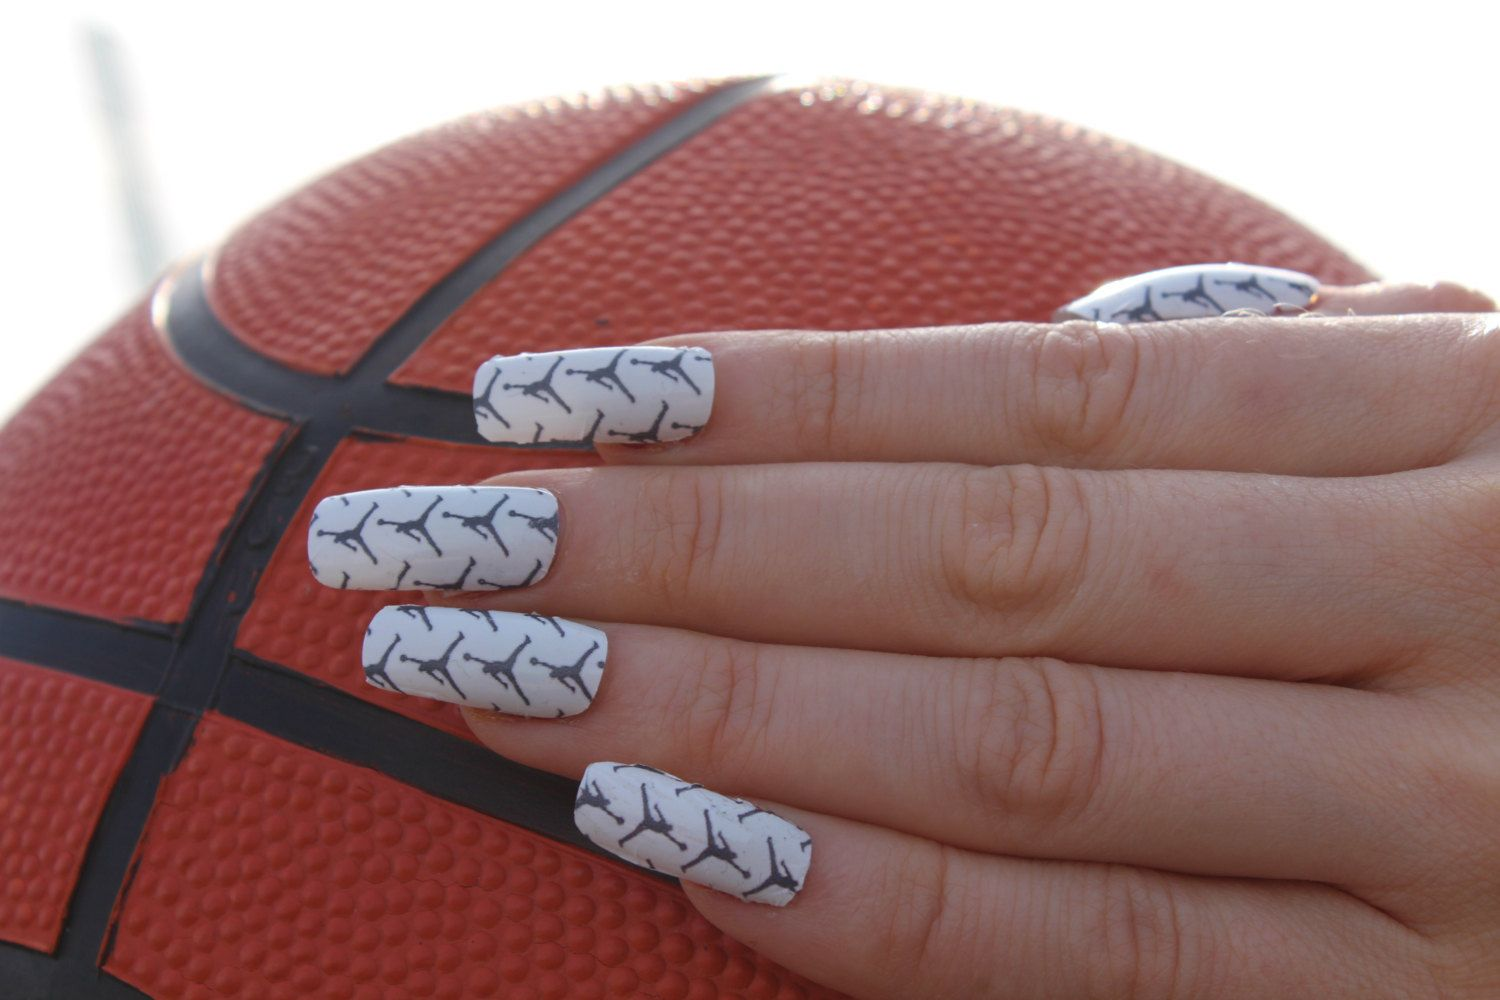 Pin by Essance on Nail it... | Pinterest | Nike nails, Jumpman logo ...